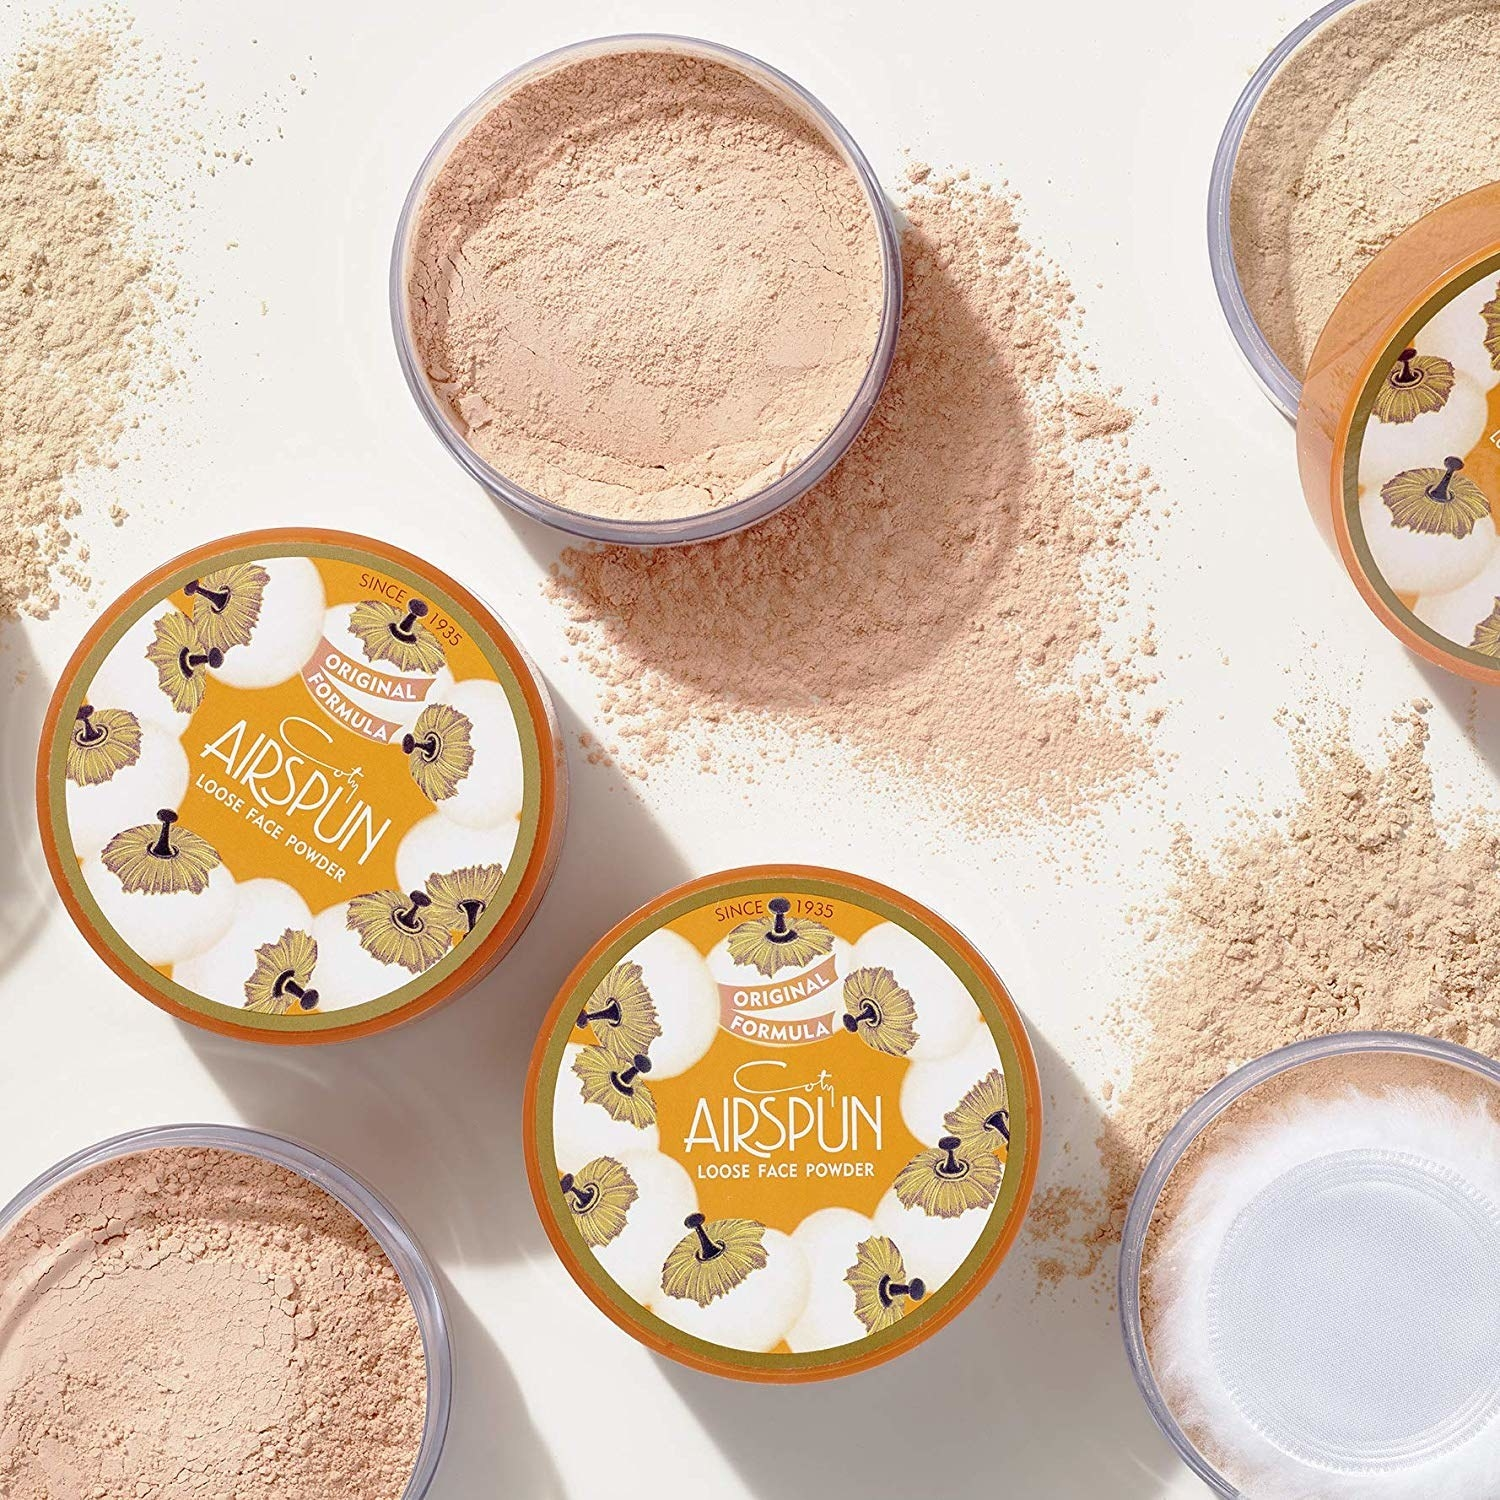 Some scattered containers of the Coty Airspun loose setting powder.